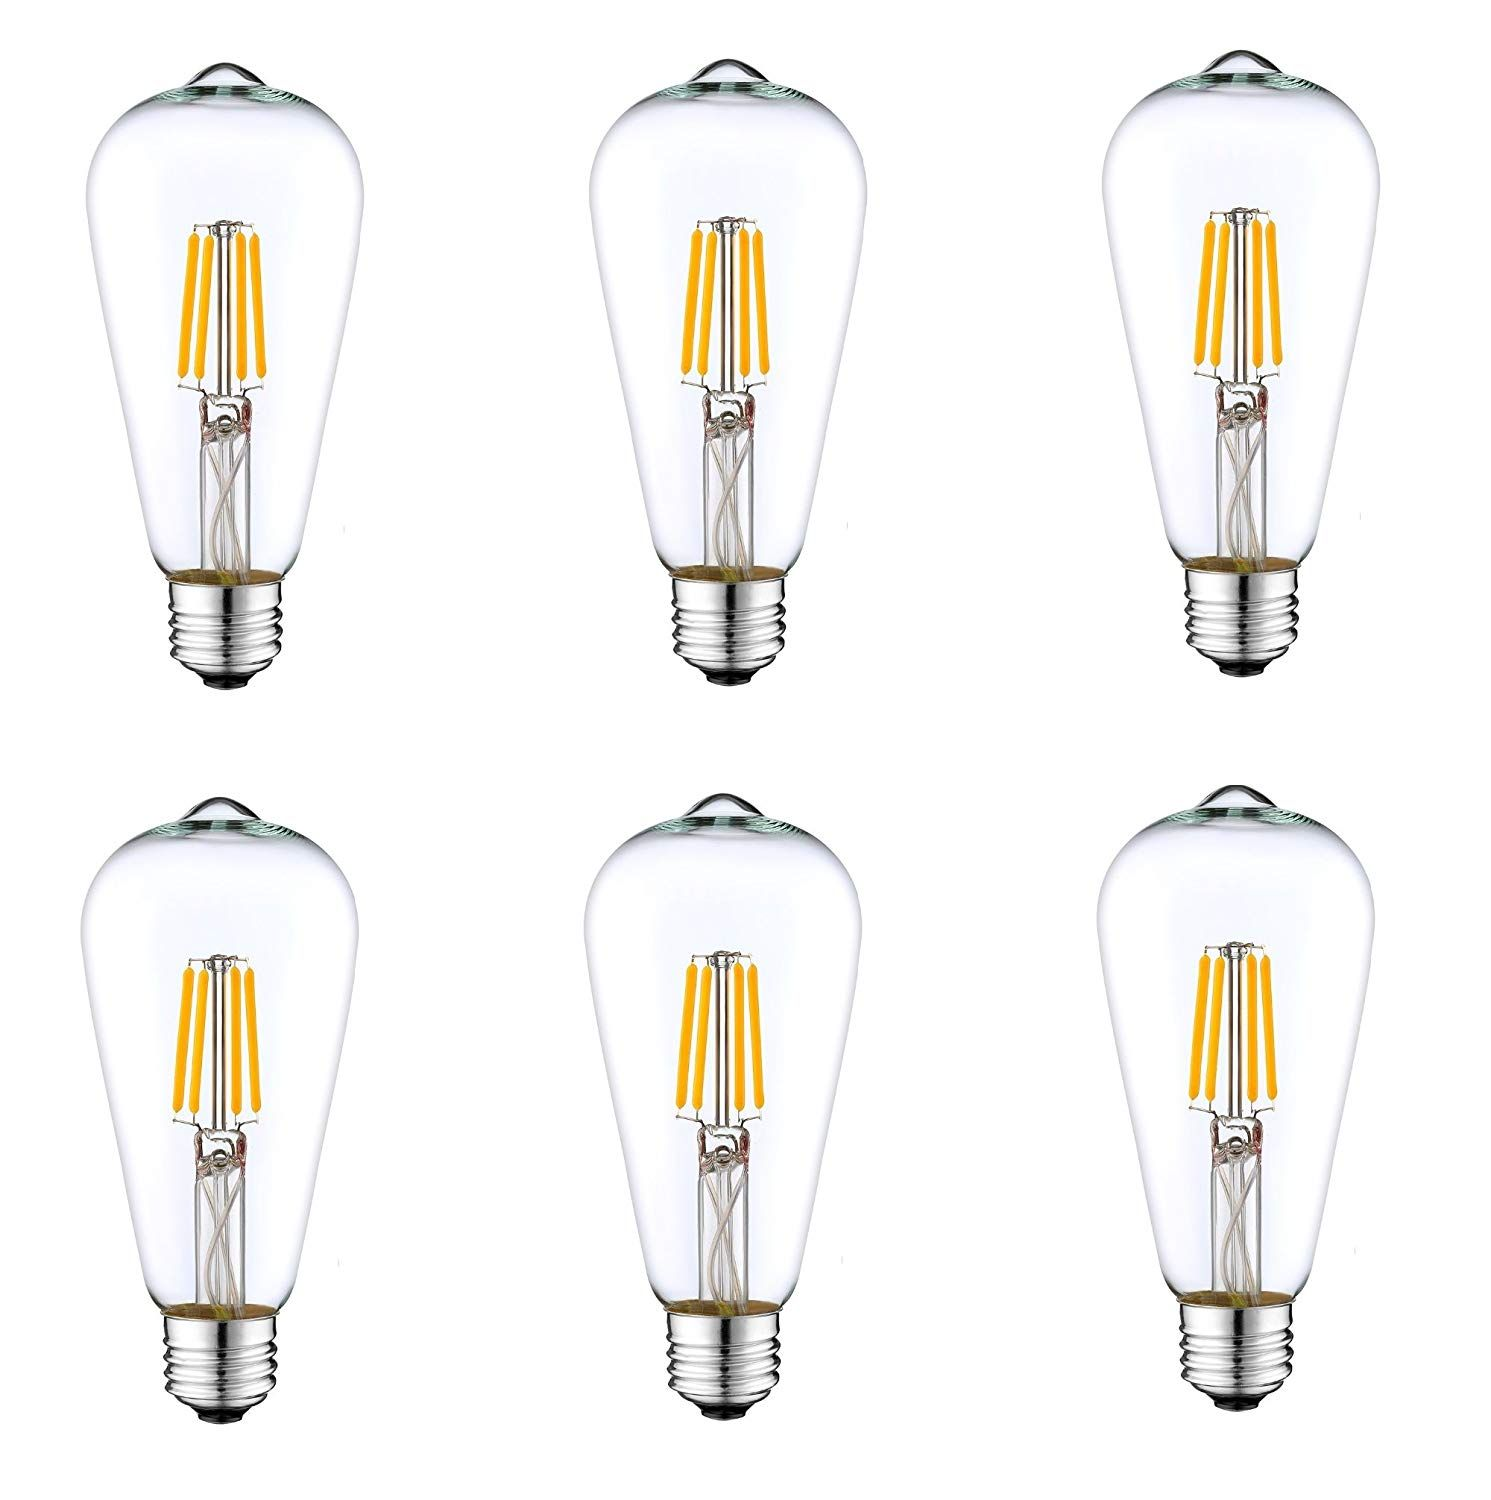 6 Pack Dc 12v Nostalgic Warm White 3000k 6watt Led Edison Filament St64 Light Bulb E26 E27 Medium Base Lamp Low Volta Cage Pendant Lamp Bulb Pendant Light Bulb